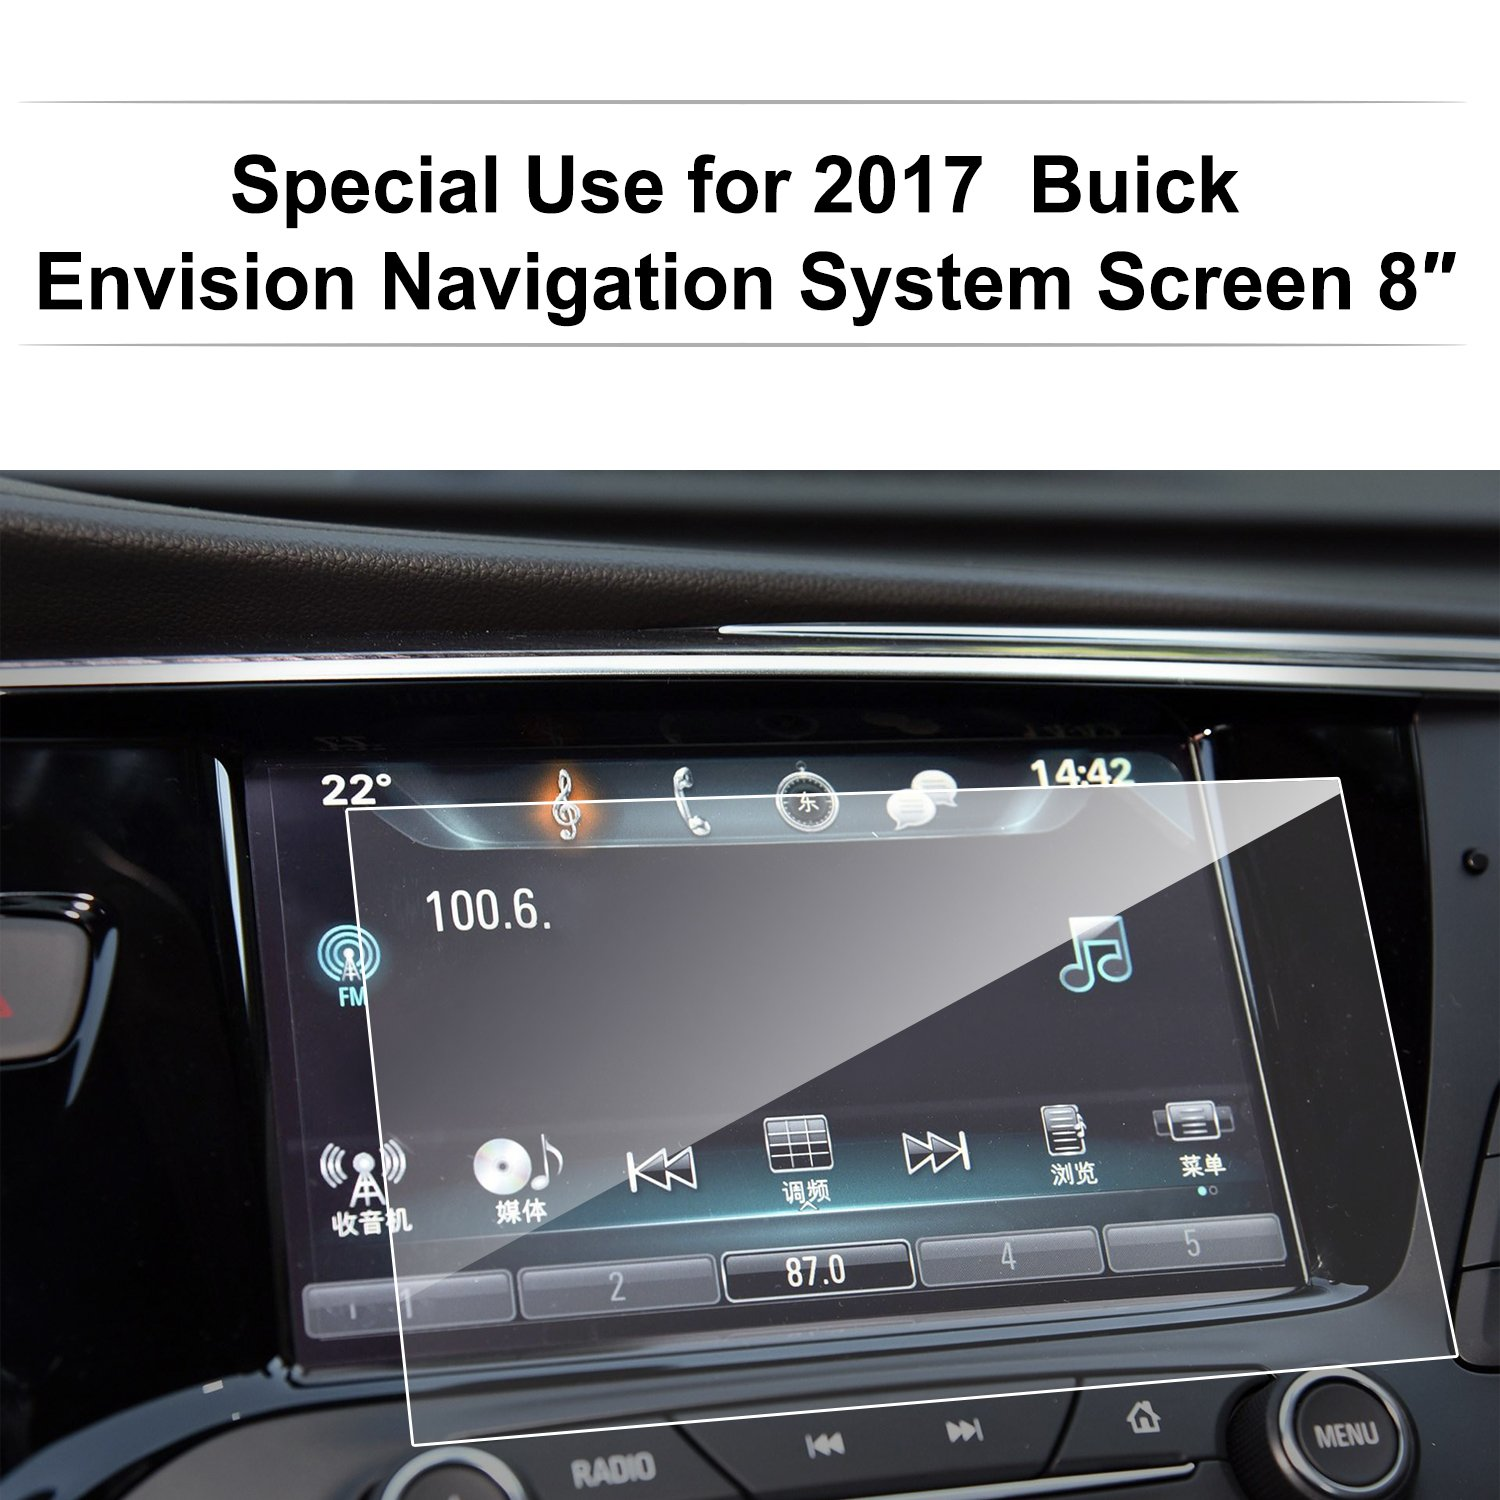 Tempered Glass In-Dash Center Touch Display Screen Protector Anti Scratch High Clarity LiFan Buick Envision175105 Buick Envision 2017 8-Inch Car Navigation Screen Protector,LFOTPP 9H